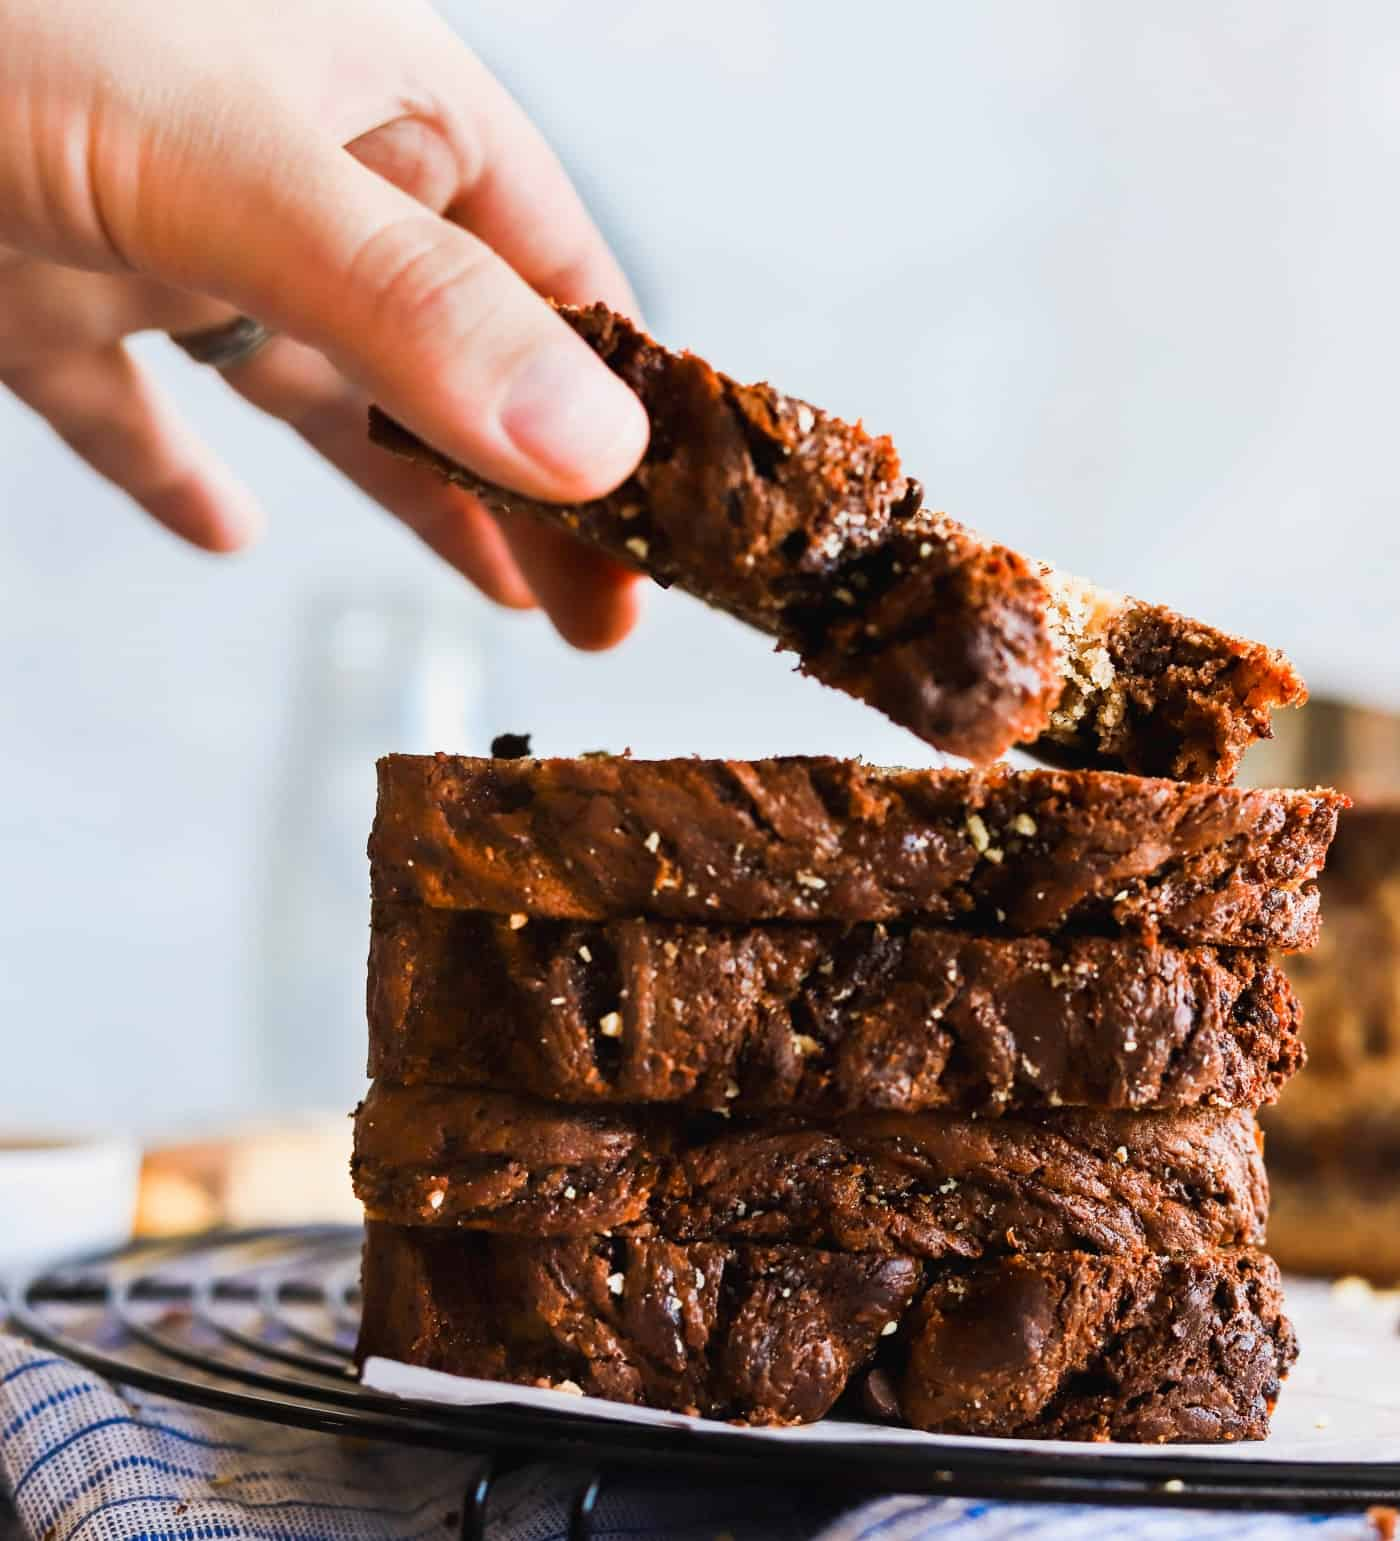 Moist Nutella swirled banana bread stack 4 high while lifting one off the stack.